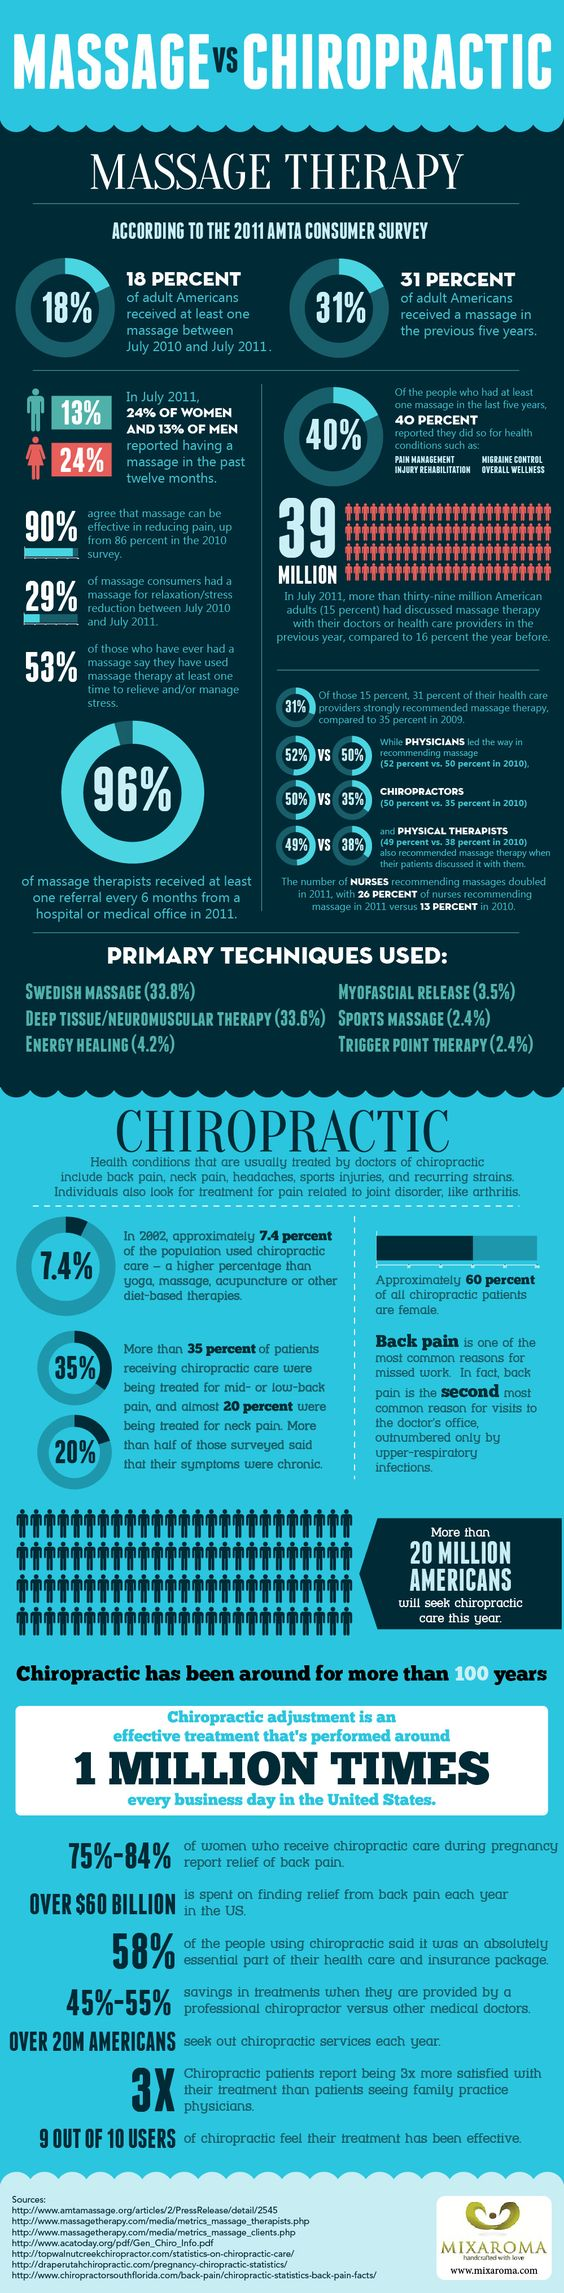 Benefits and Statistics of Massage Therapy and Chiropractors. People were interviewed and they maintain that massage reduces pain. People use massage